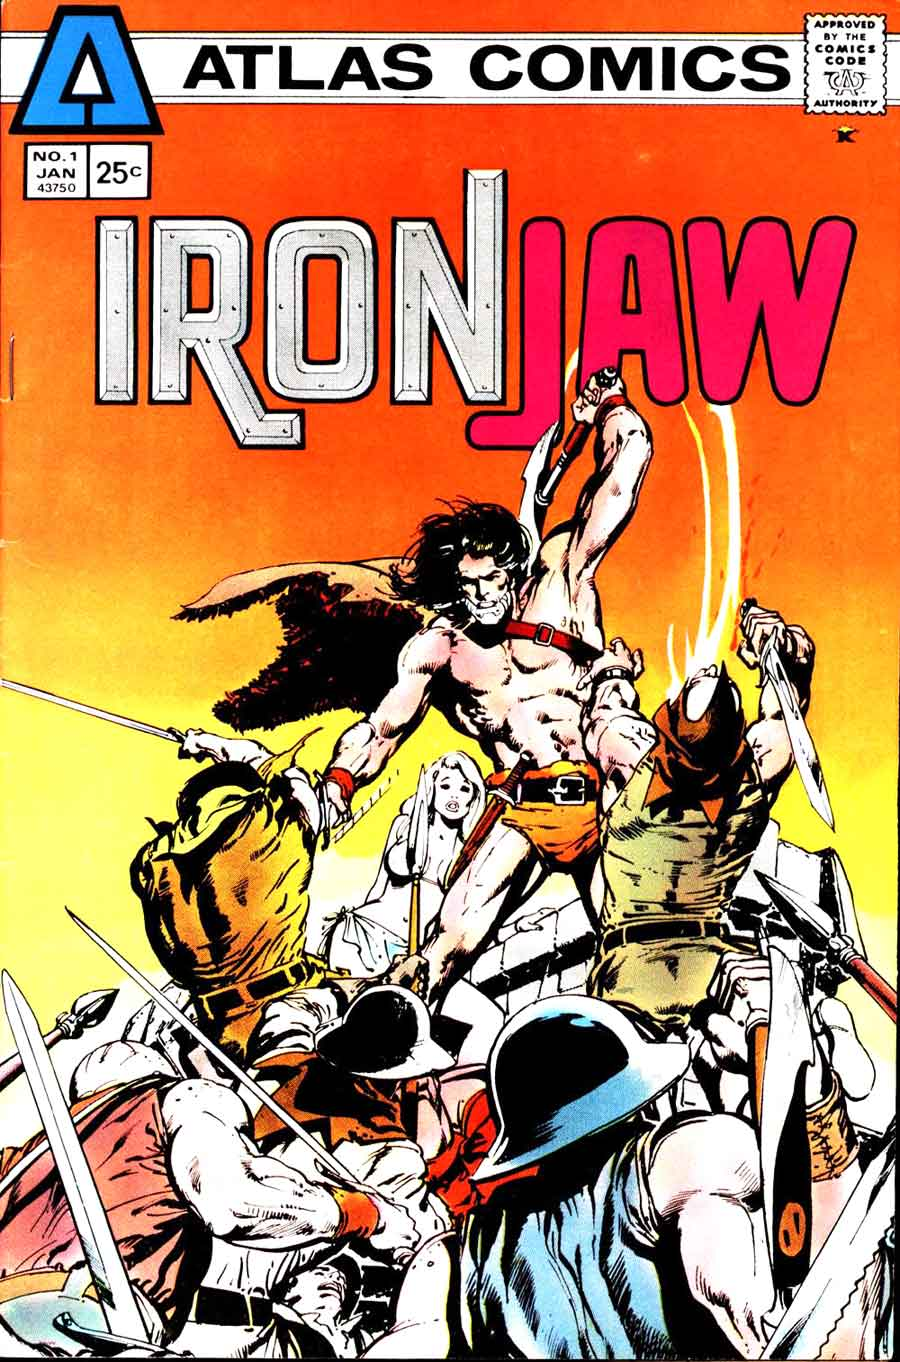 Ironjaw v1 #1 atlas seaboard comic book cover art by Neal Adams